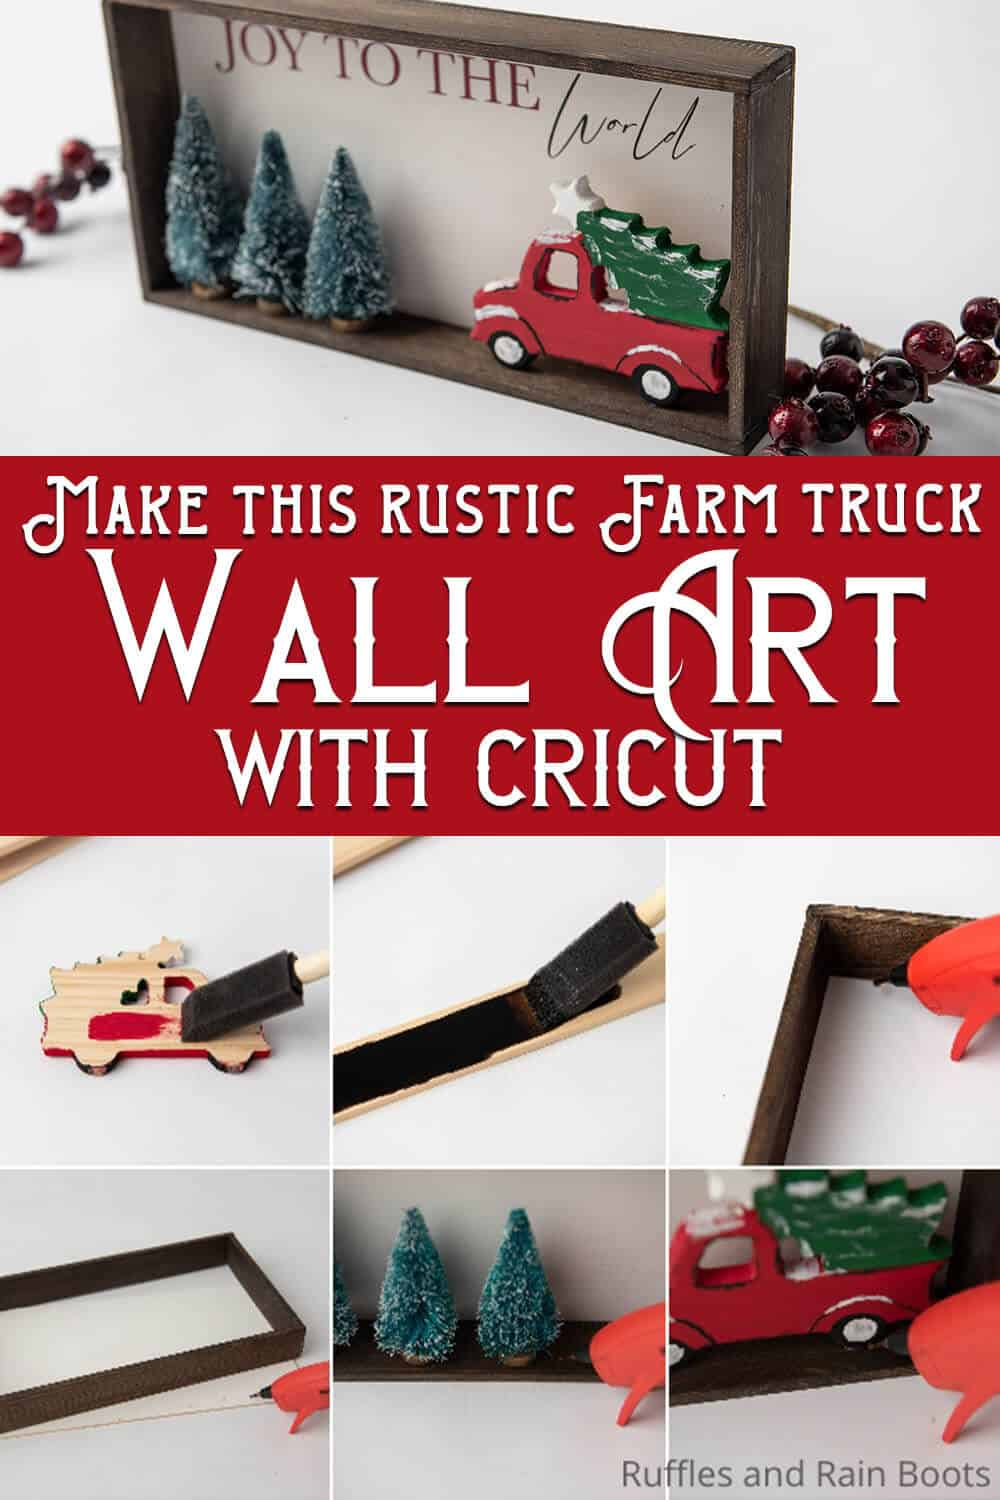 photo collage of farm truck holiday sign cricut craft with text which reads make this rustic farm truck wall art with cricut